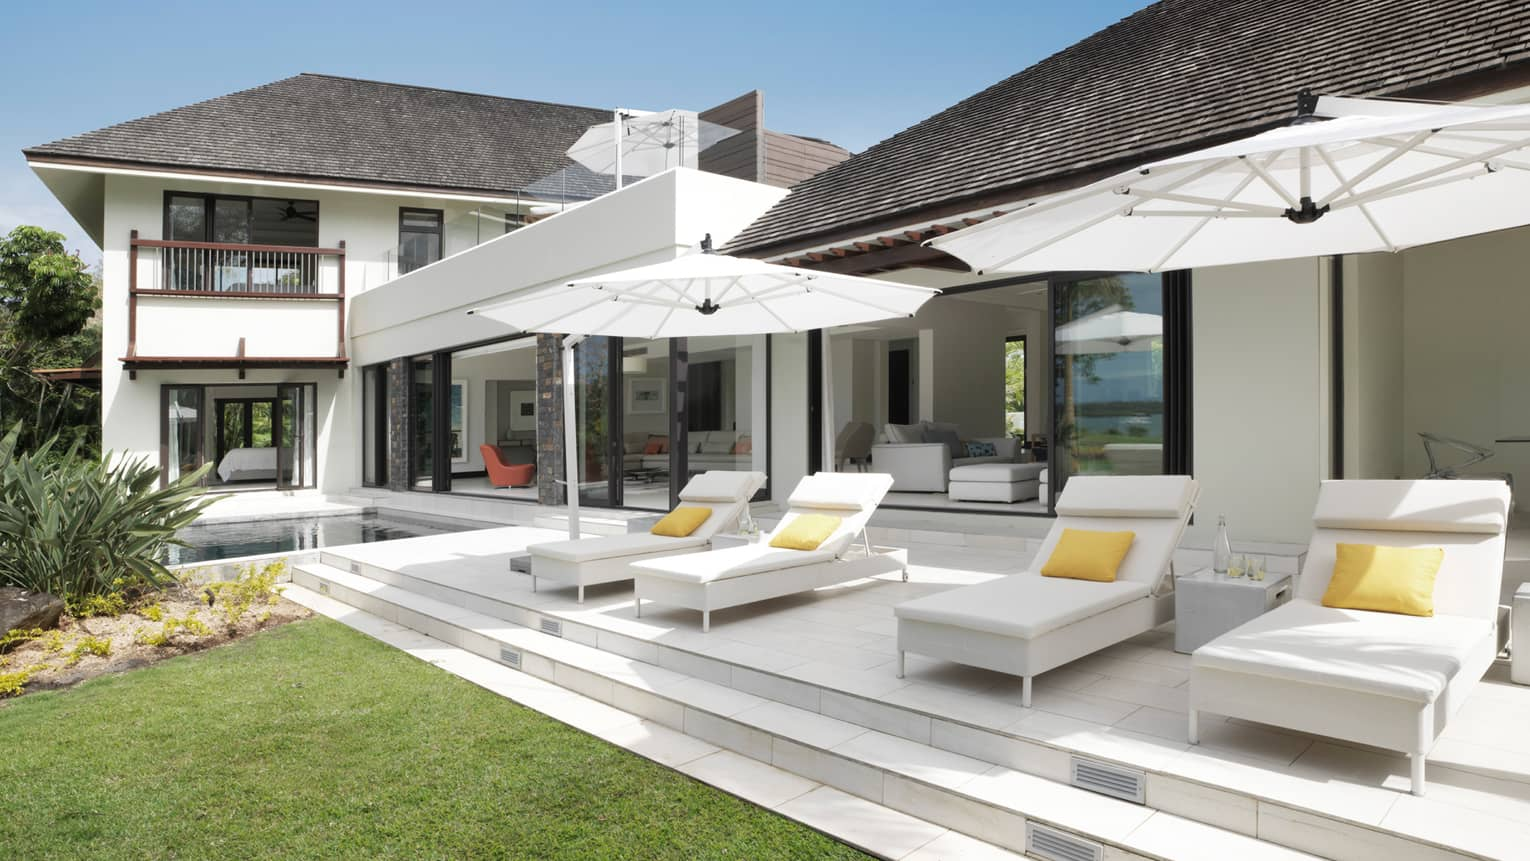 White lounge chairs under umbrellas on patio in front of large white two-storey villa